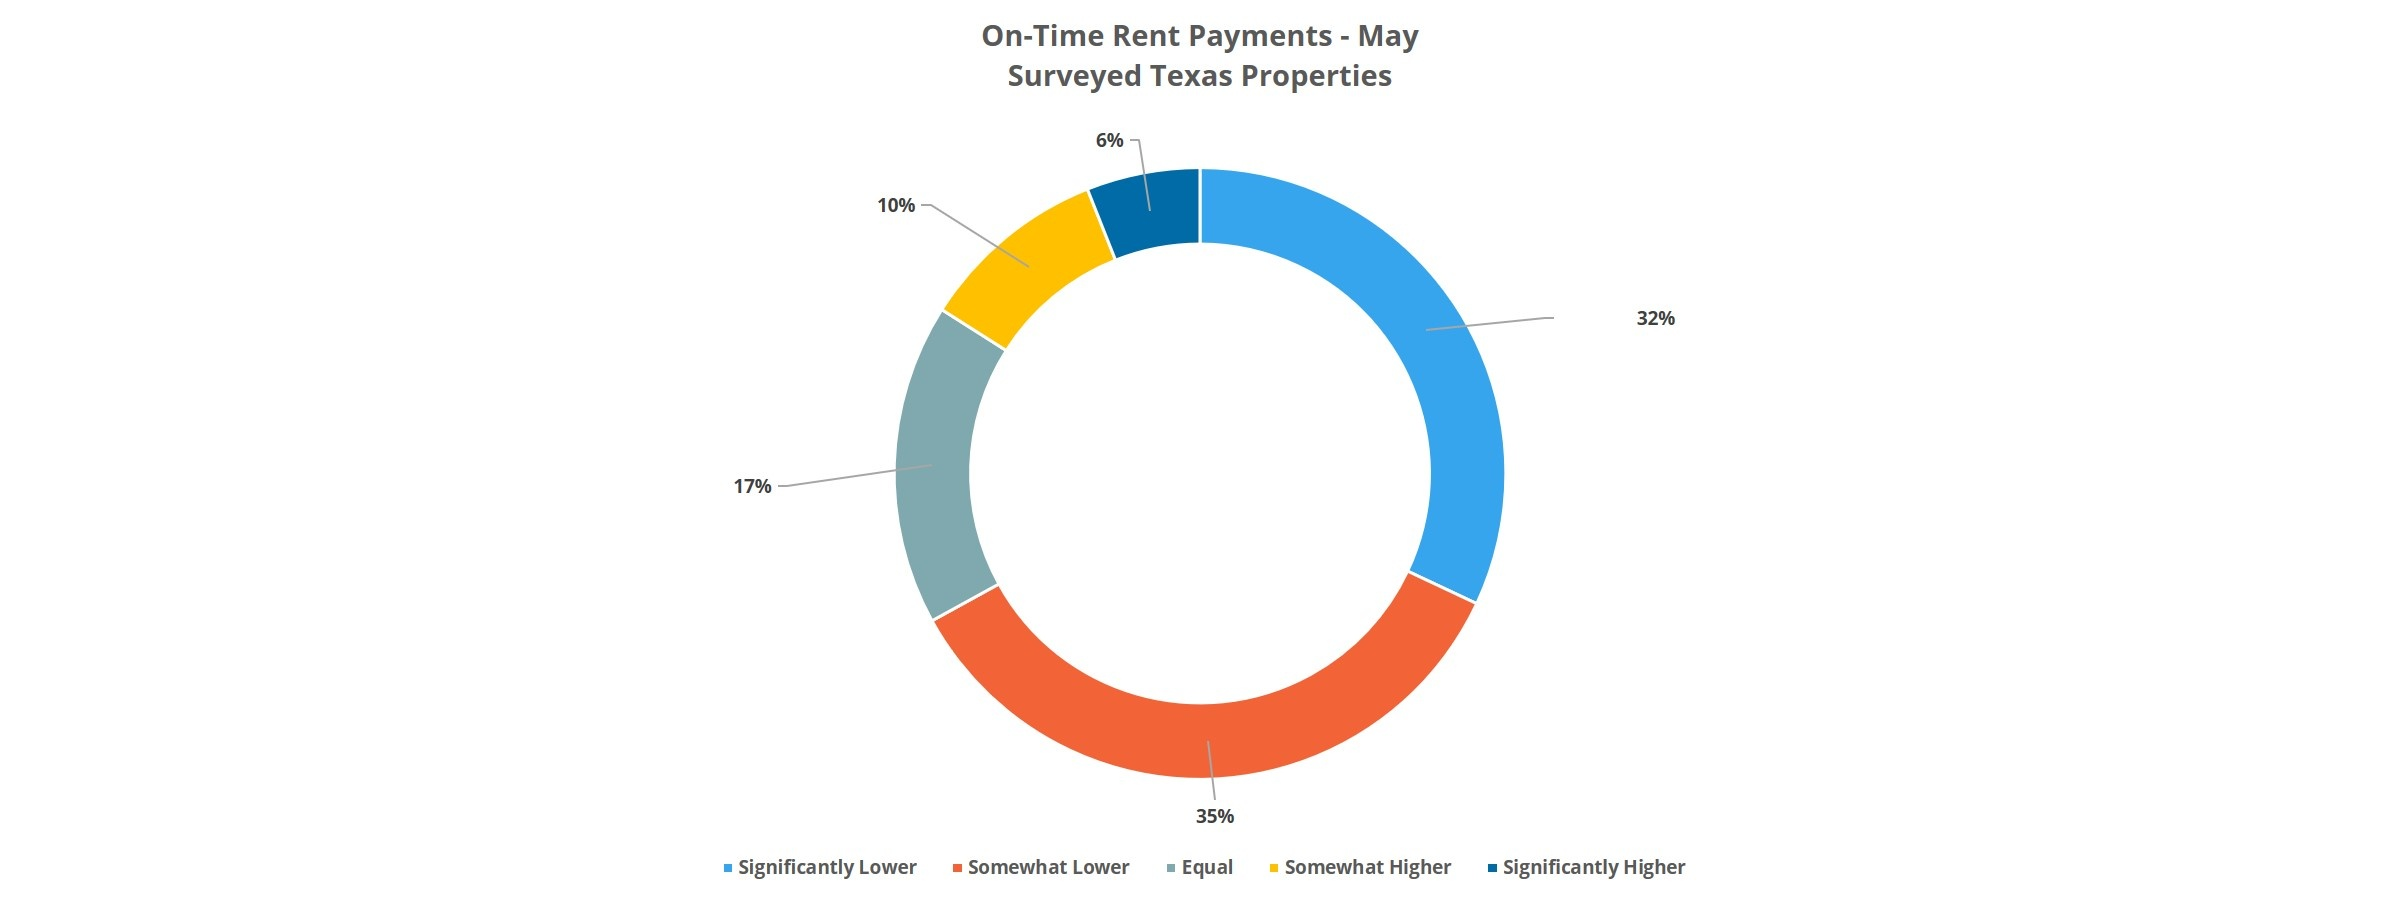 On-Time Rent Payments - May, Surveyed Texas Properties